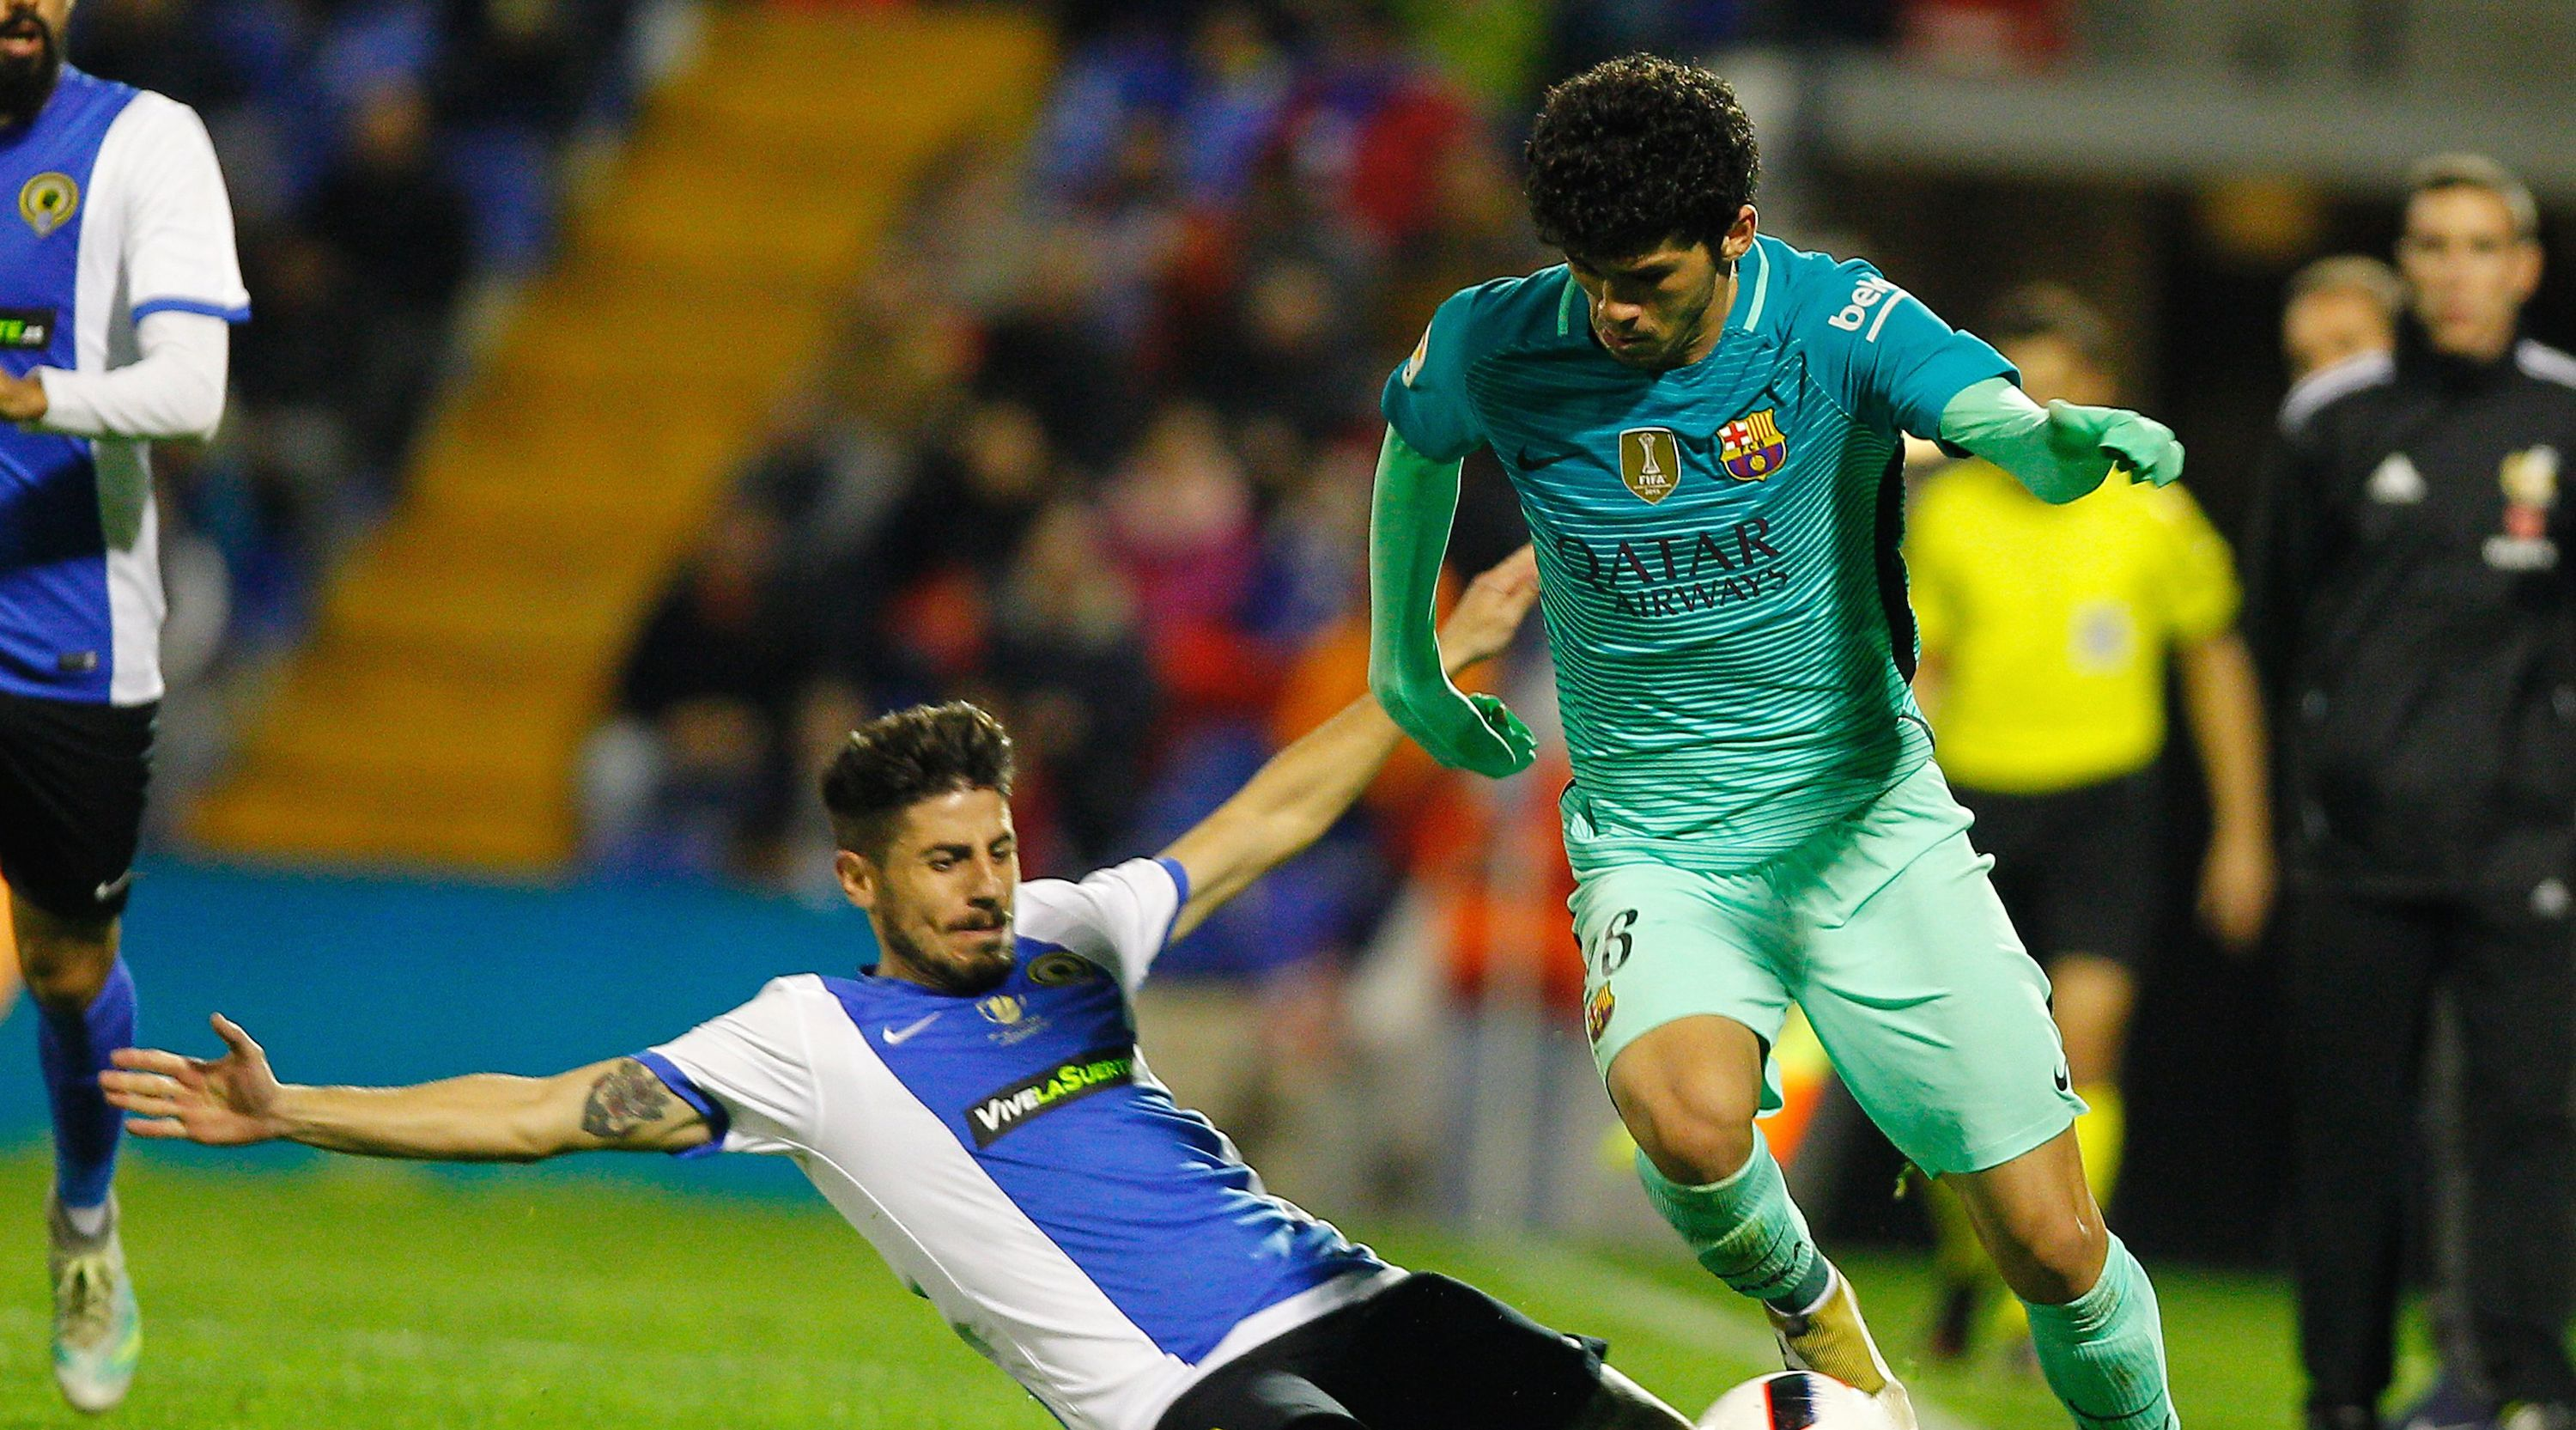 Hercules' midfielder Juanma Espinosa (L) vies with Barcelona's midfielder Carles Alena during the Spanish Copa del Rey (King's Cup) round of 32 first leg football match Hercules CF vs FC Barcelona at the Estadio Jose Rico Perez in Alicante on November 30, 2016. / AFP / JOSE JORDAN (Photo credit should read JOSE JORDAN/AFP/Getty Images)